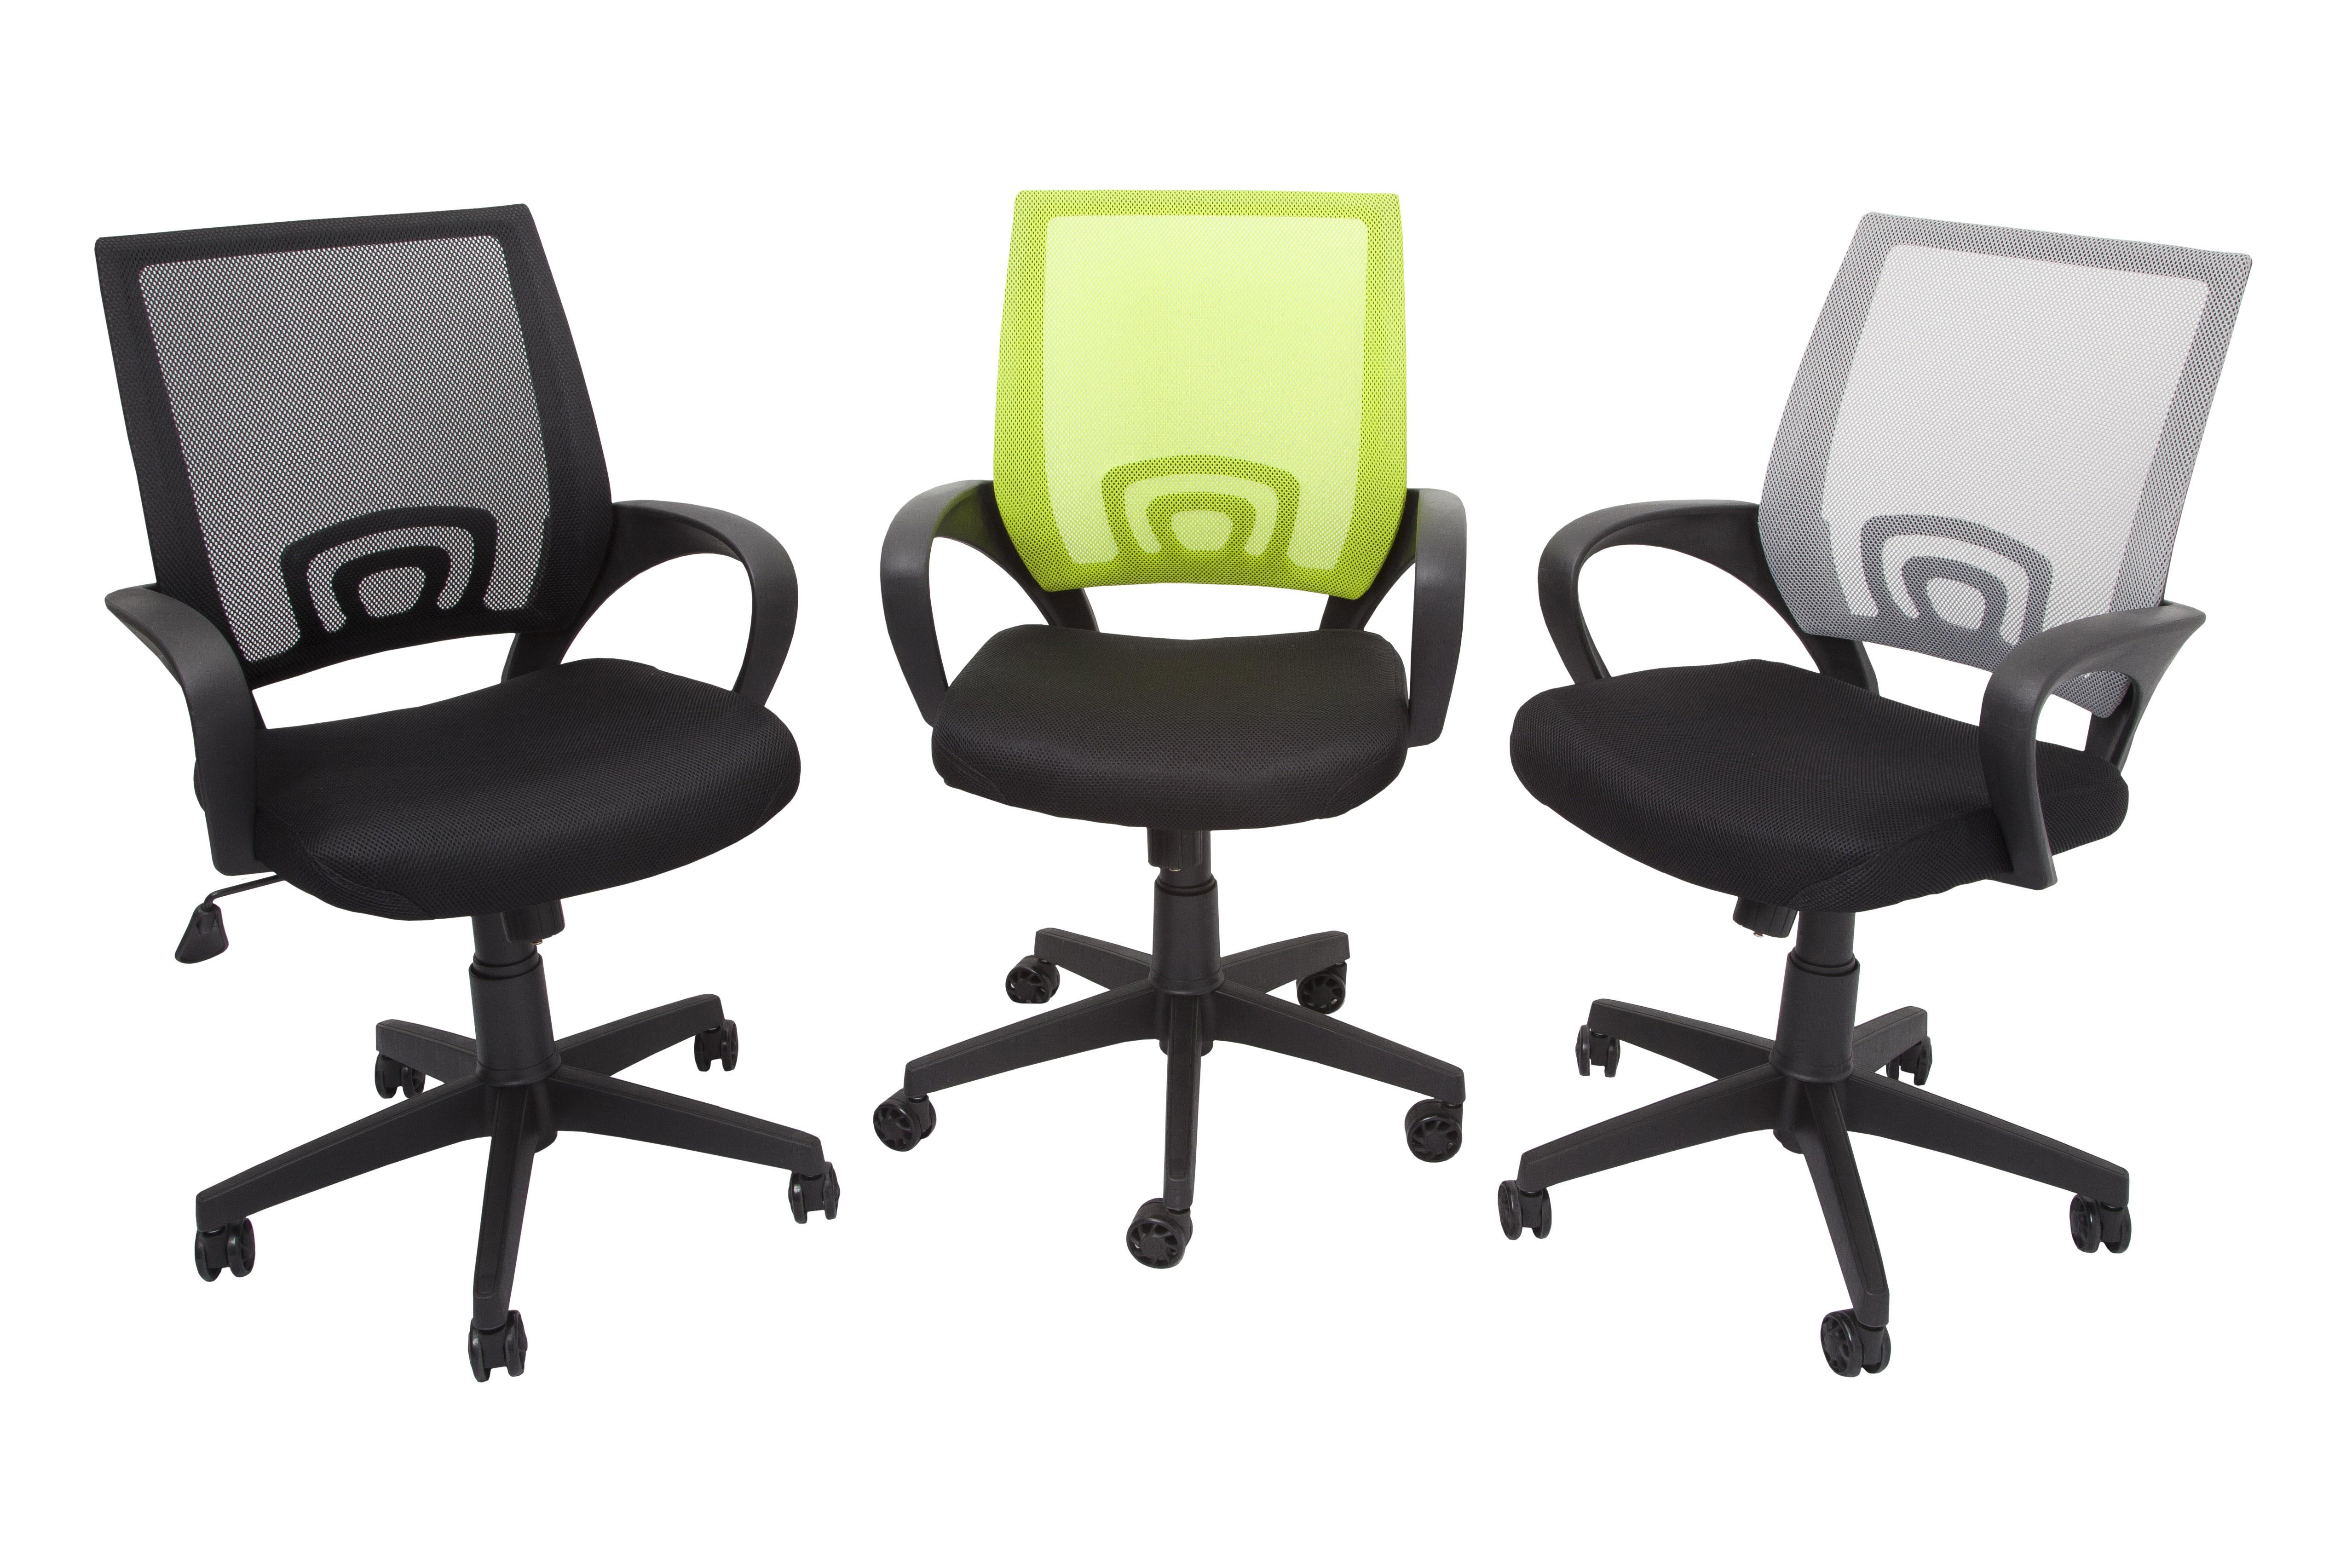 ergonomic chair brisbane fishing lazada home office setting file it information management and